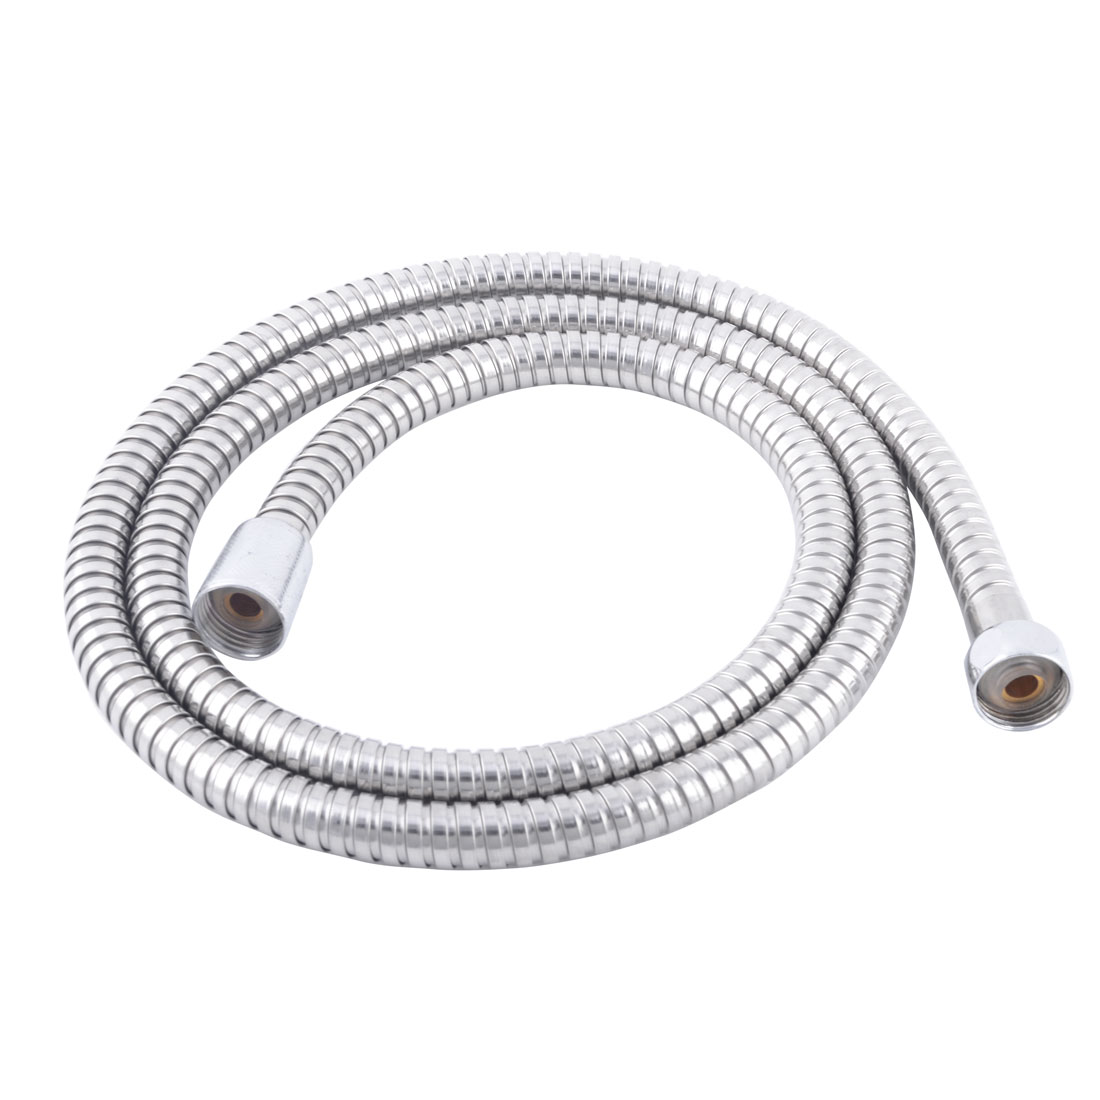 Bathroom Metal Flexible Bathing Water Heater Shower Hose Pipe Silver Tone 150cm Lenght